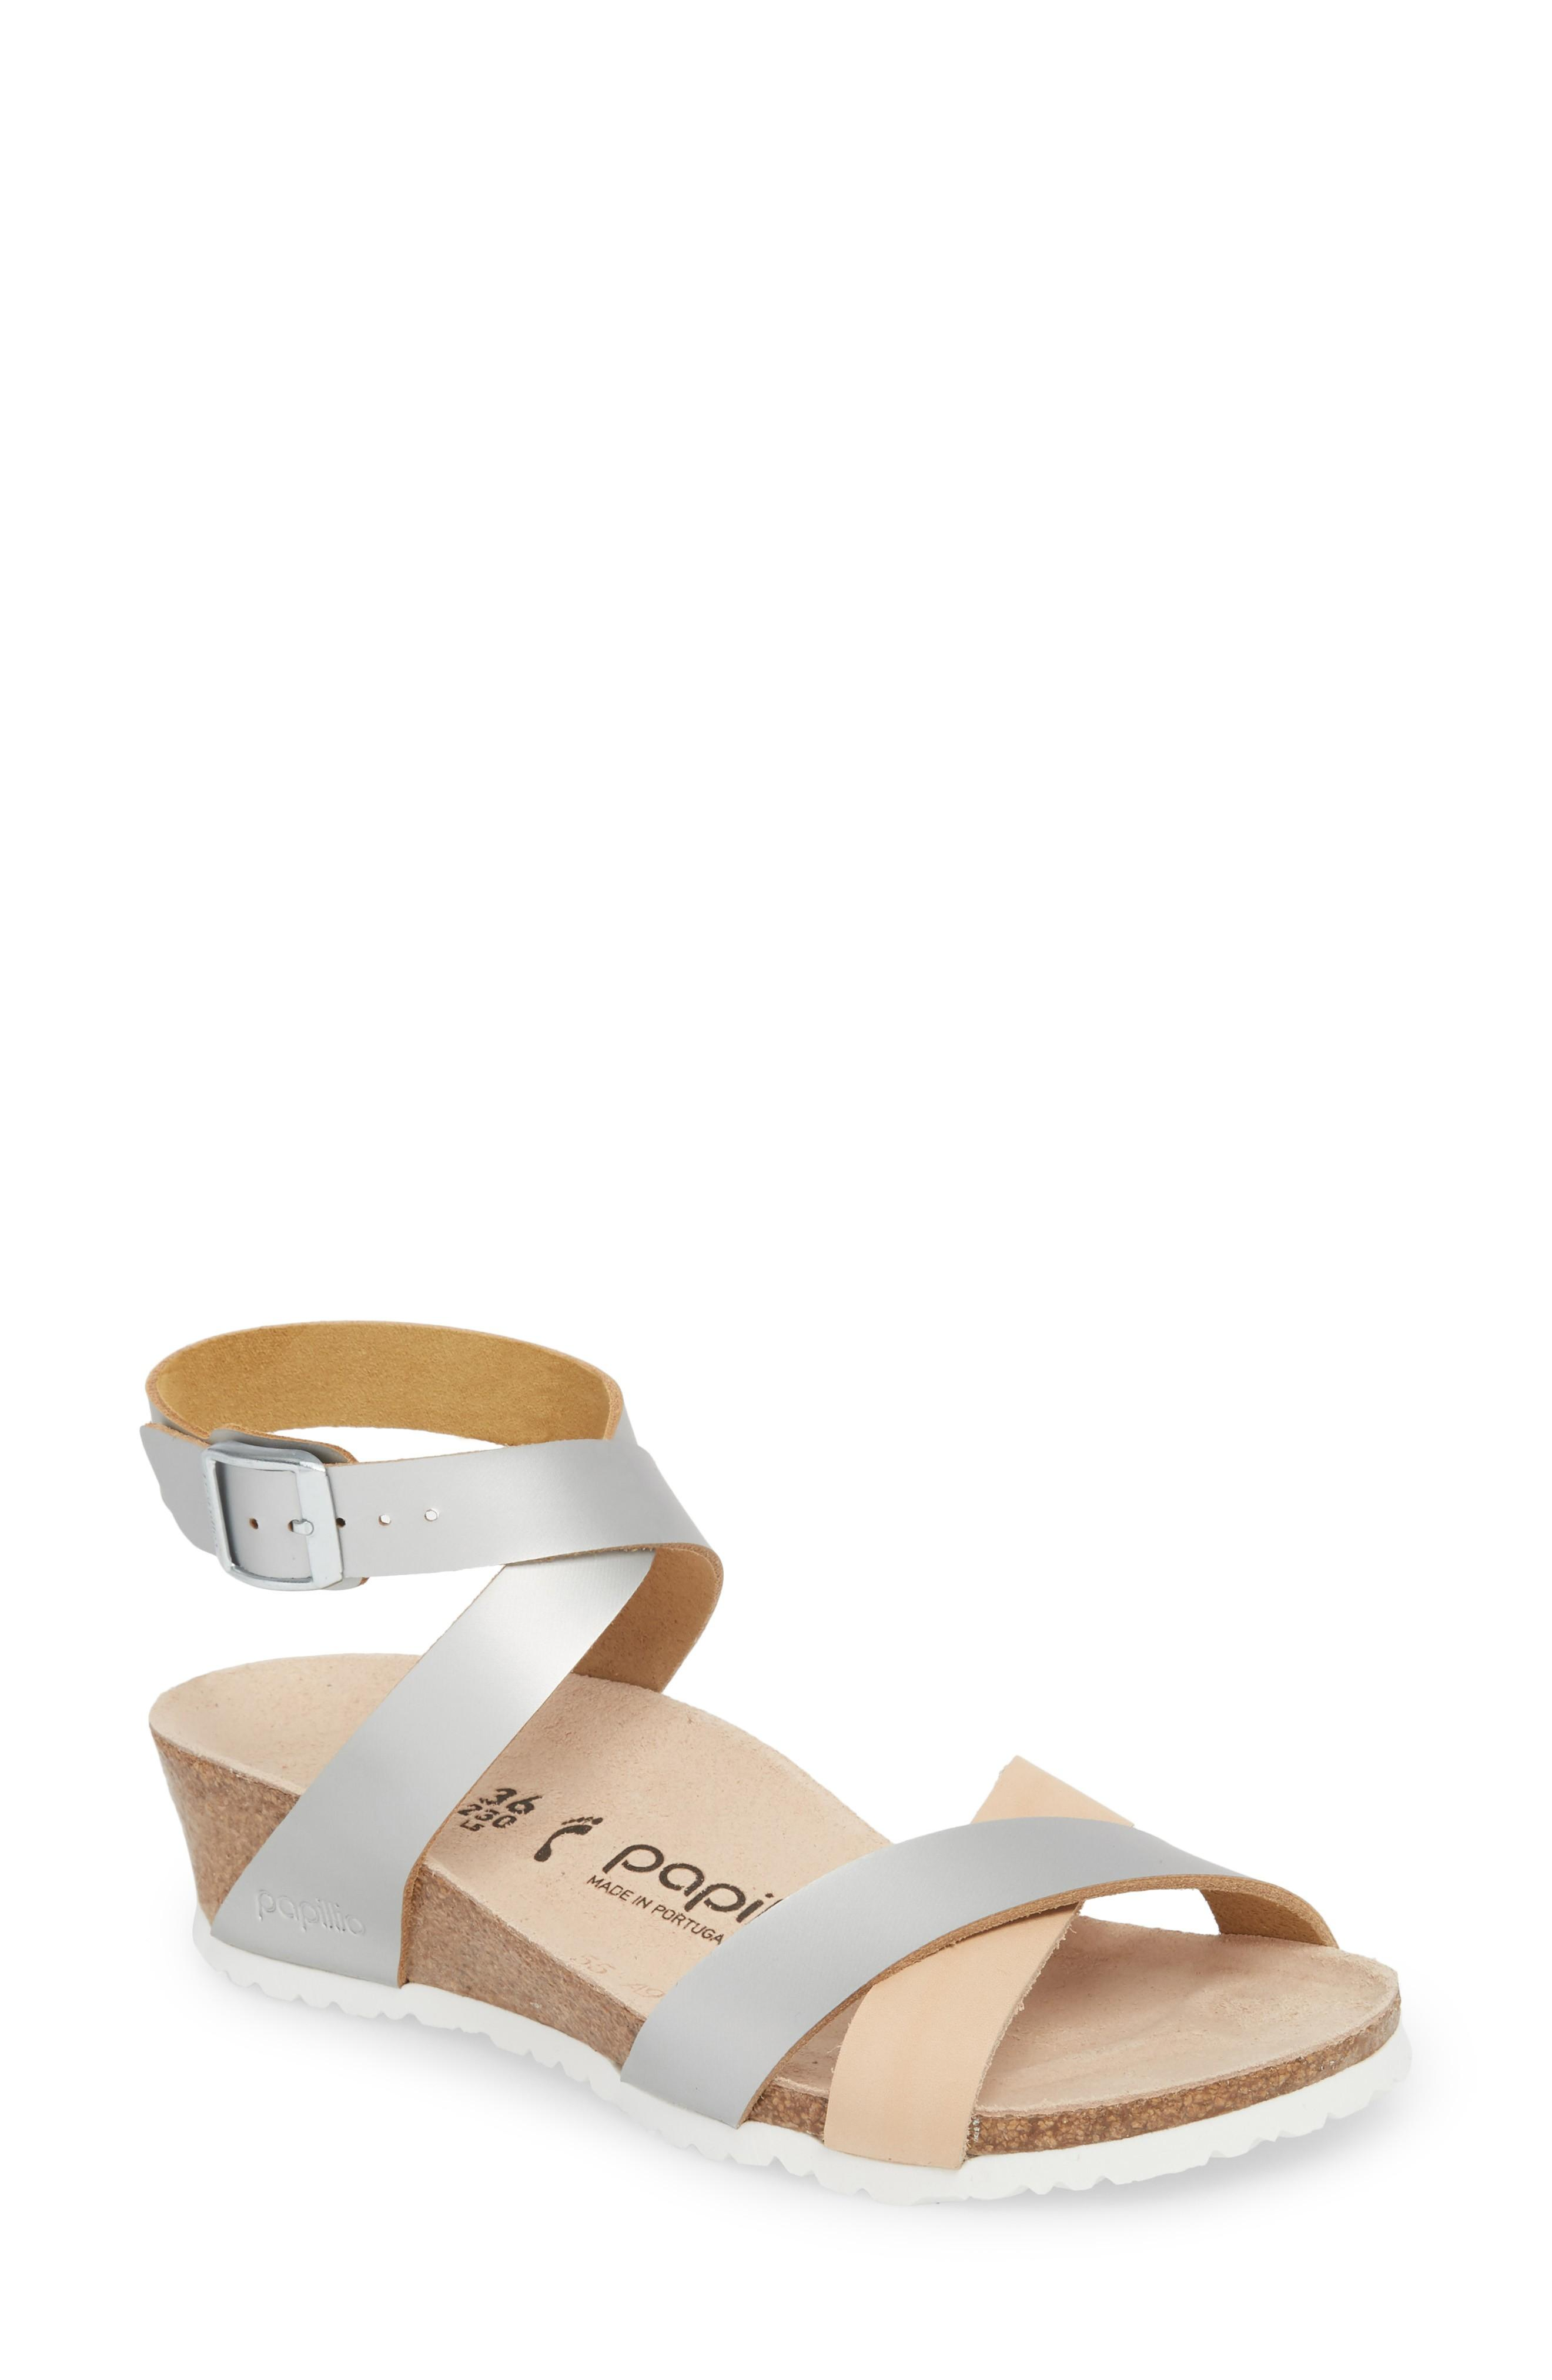 936b791ad Birkenstock Lola Wedge Sandal In Frosted Silver Leather | ModeSens